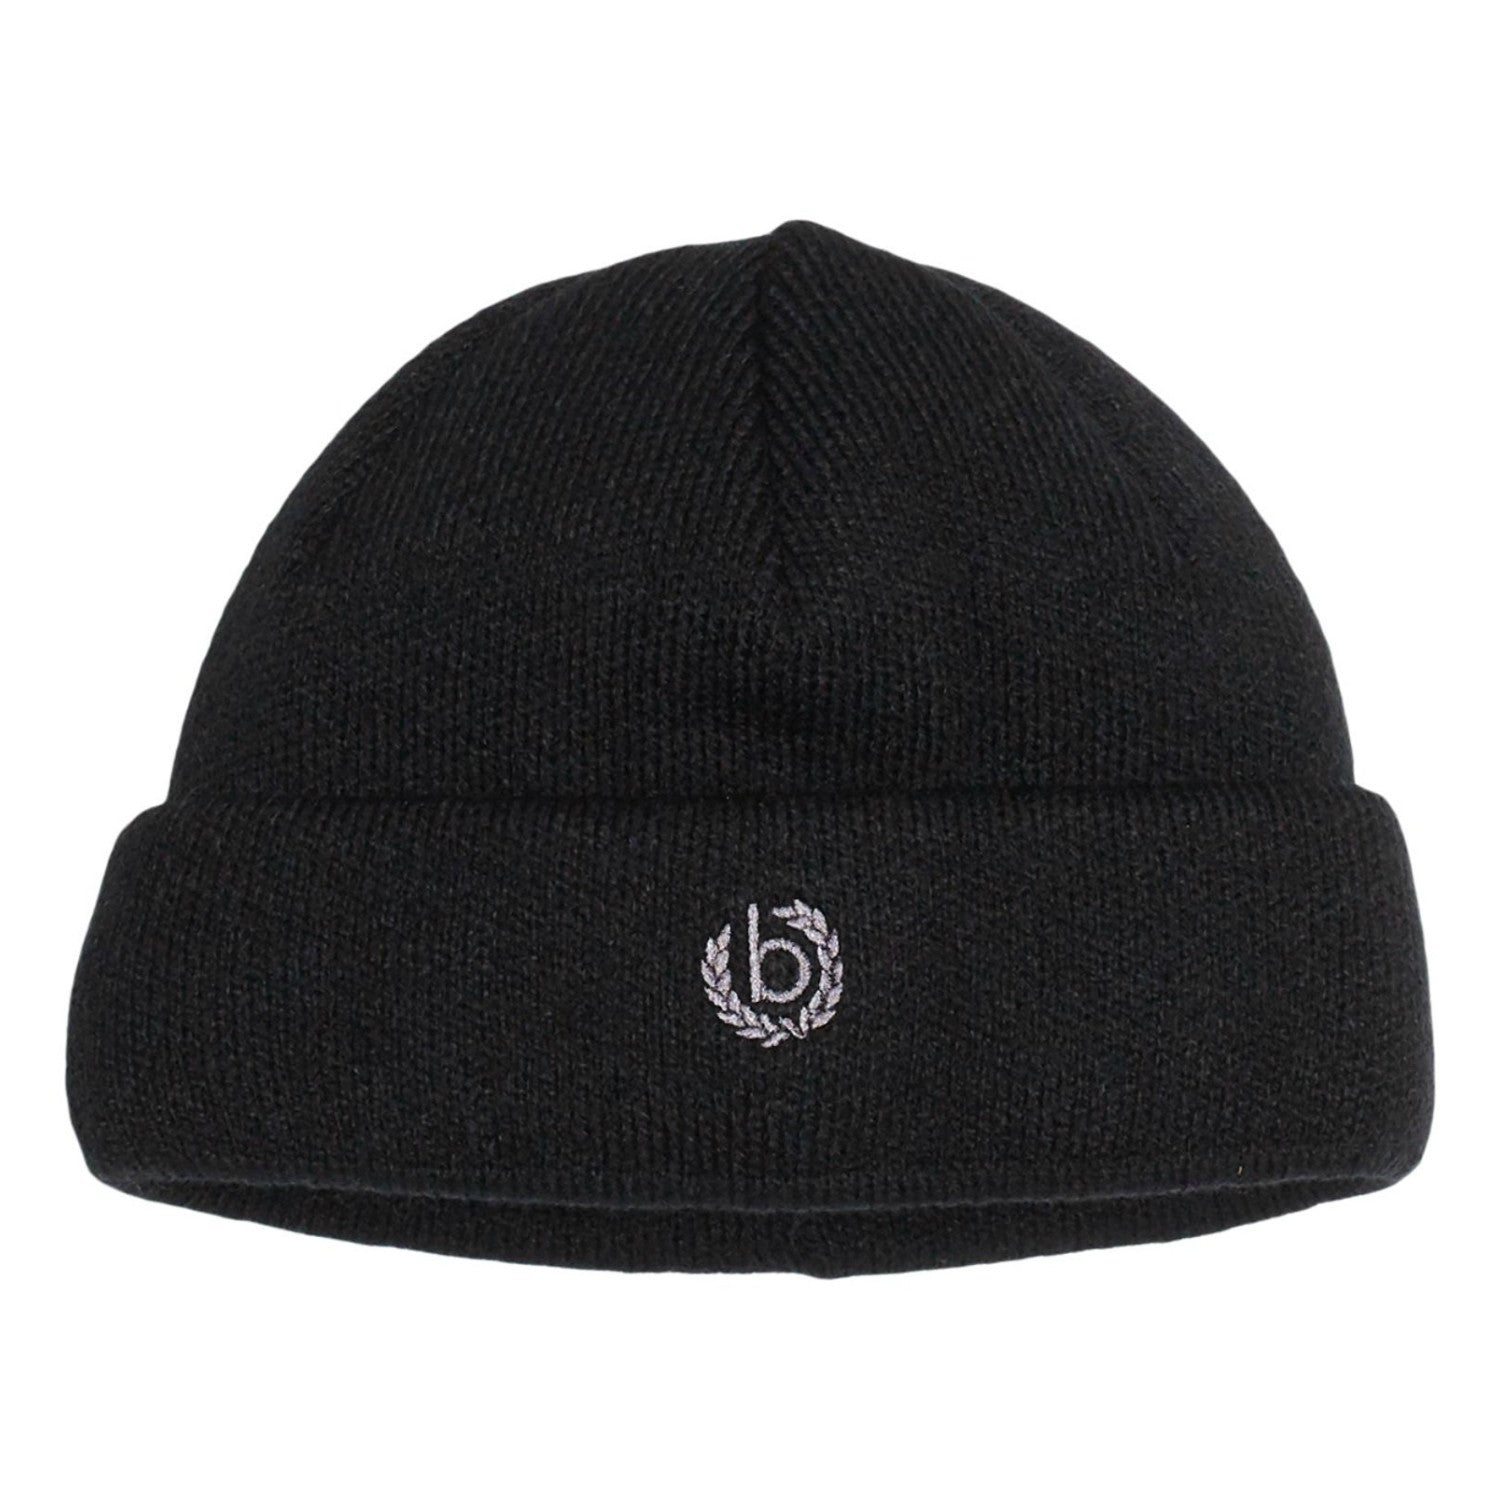 Black Wool Warm Turn-up Beanie | buy now at The Cashmere Choice London